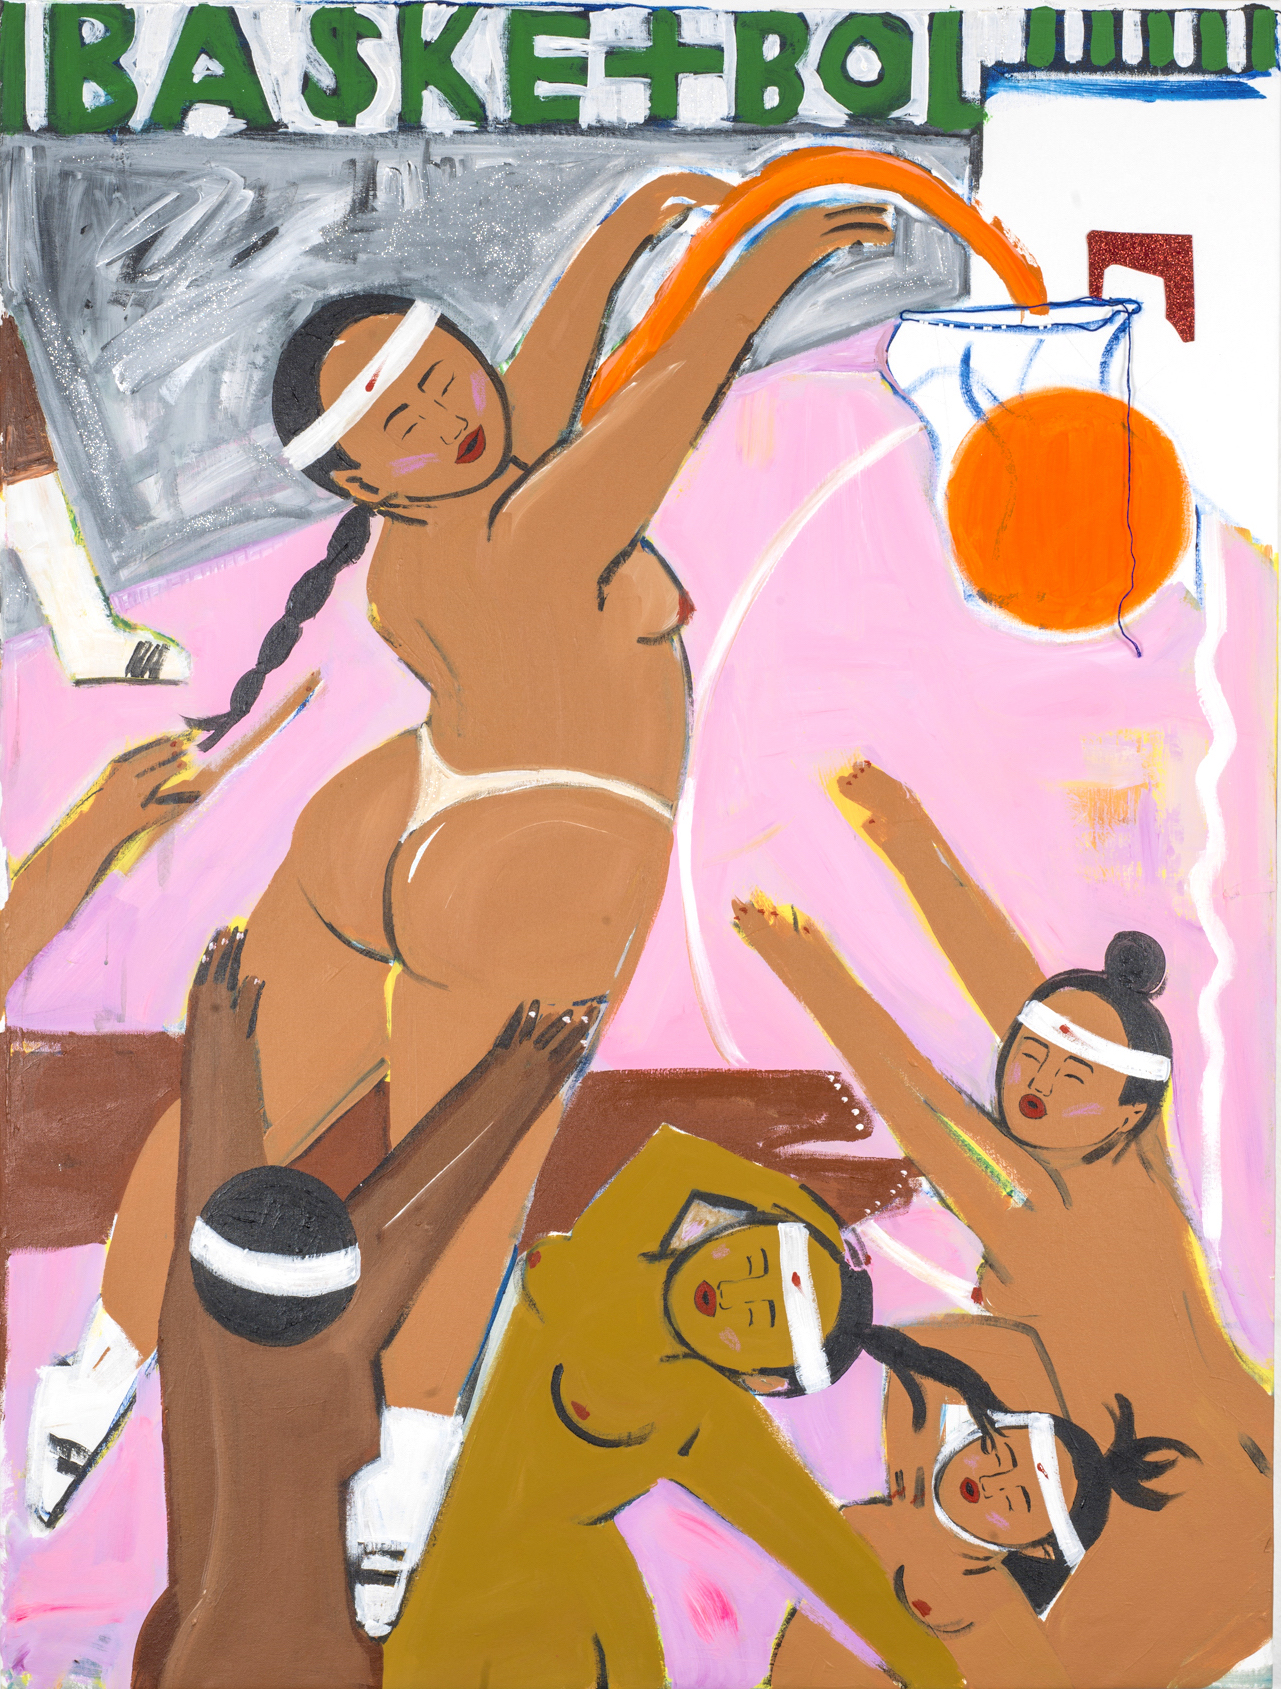 Monica Kim Garza / Basketbol #1 / 2017 / Acrylic on canvas / 48 x 36 inches